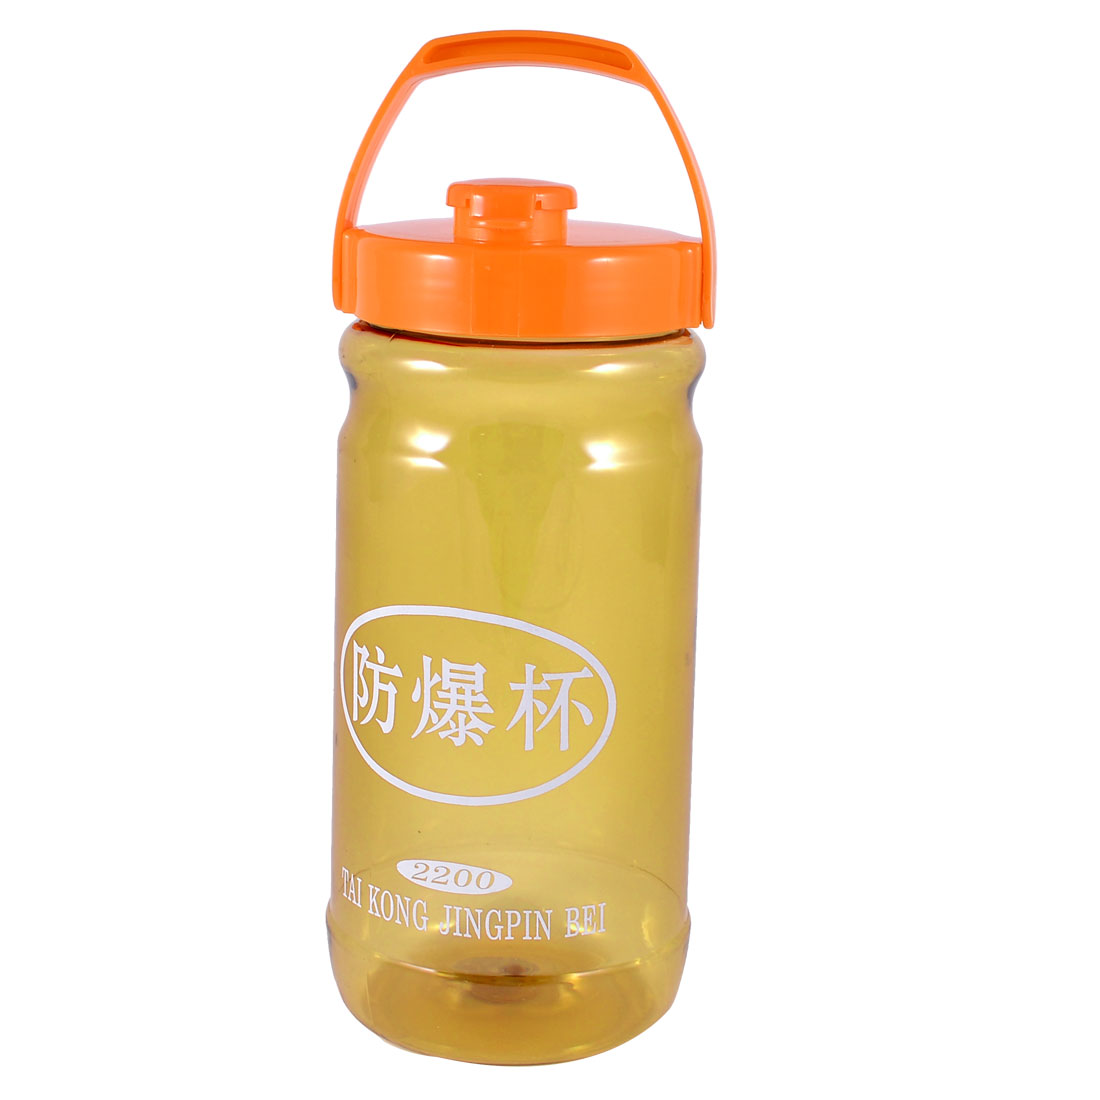 Unique Bargains Portable Clear Yellow Plastic Drinking Cup Tea Water Bottle 2200ML